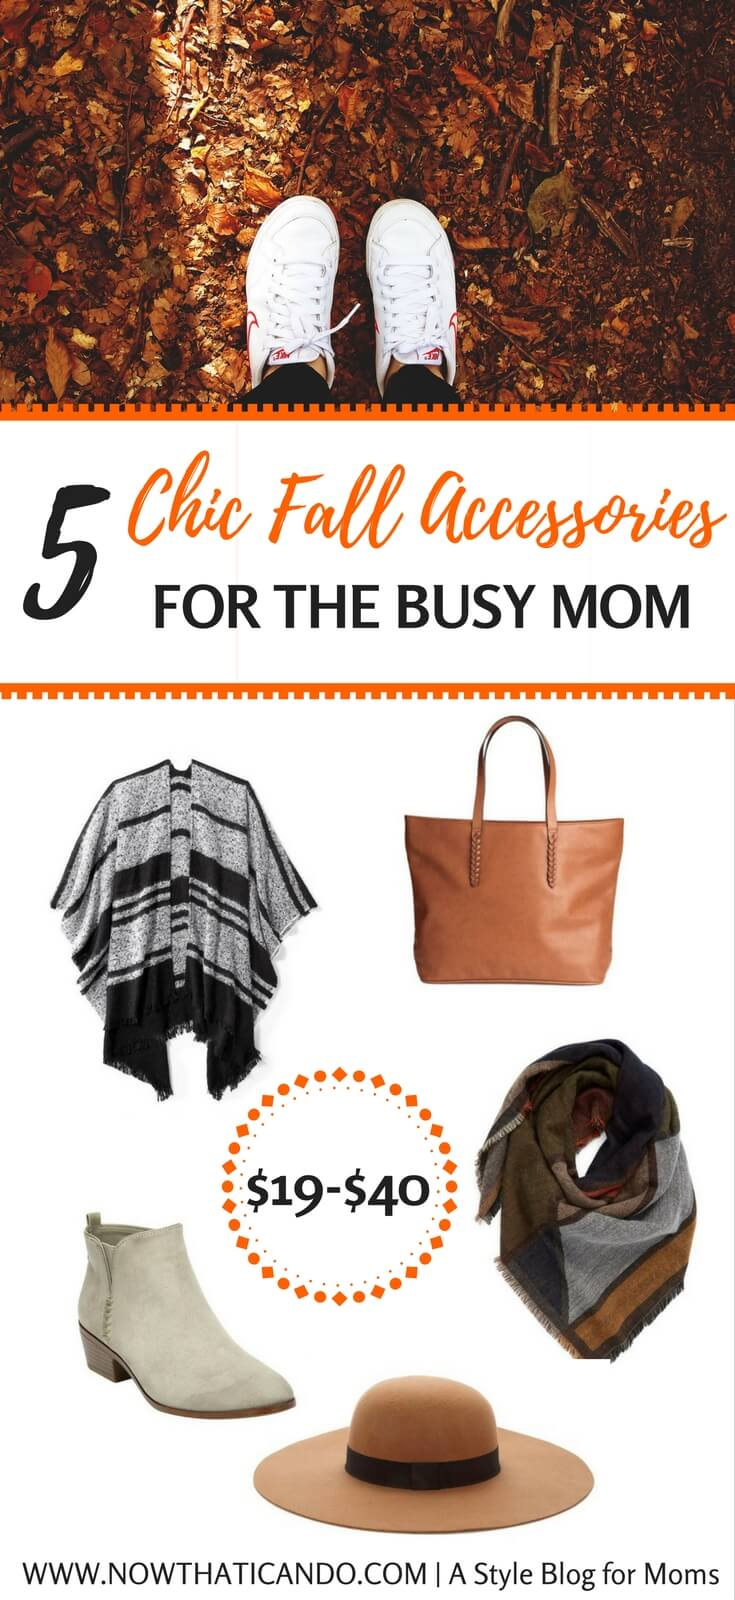 Fall into effortless mom style with these affordable accessories. Just one or two added to your current wardrobe can make your mom outfits extra stylish. Click through to see these affordable picks.